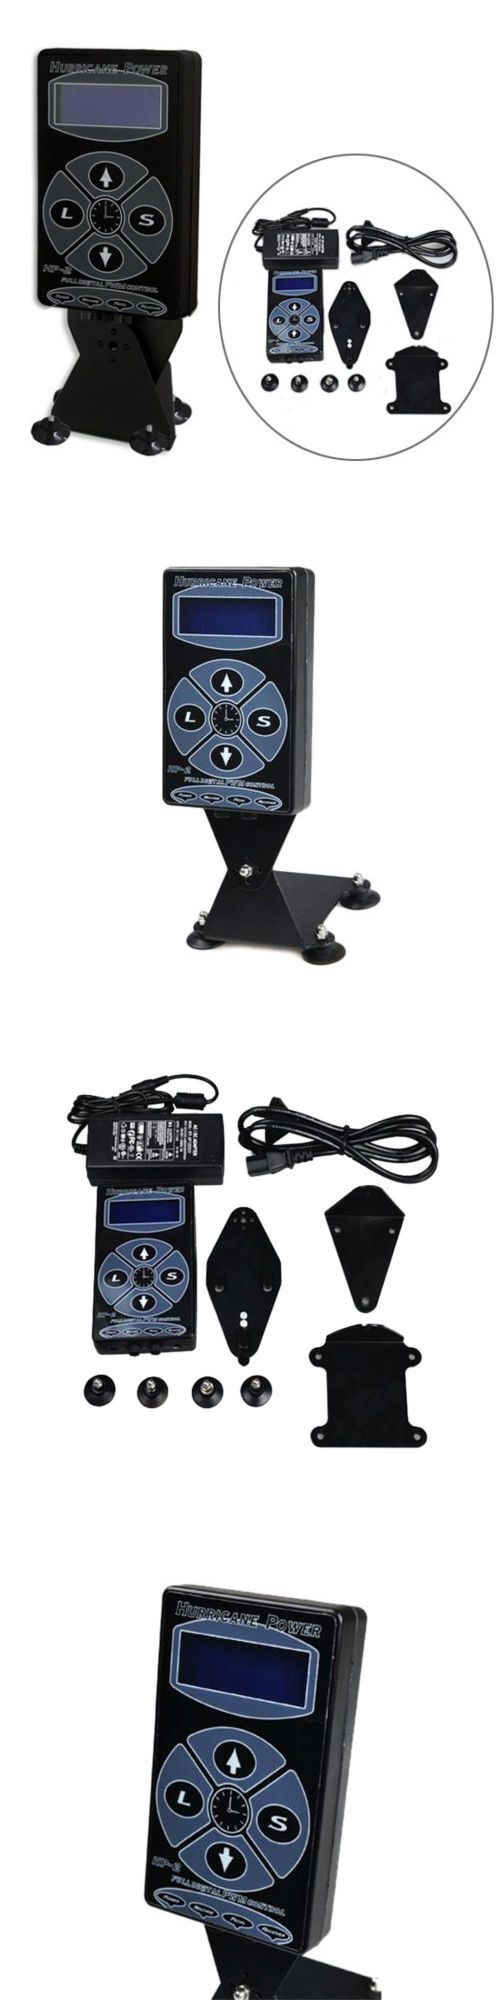 Tattoo Supplies: Hurricane Hp-2 Black Dual Digital Lcd Tattoo Power Supply Free Shipping Usa Best -> BUY IT NOW ONLY: $33.3 on eBay!